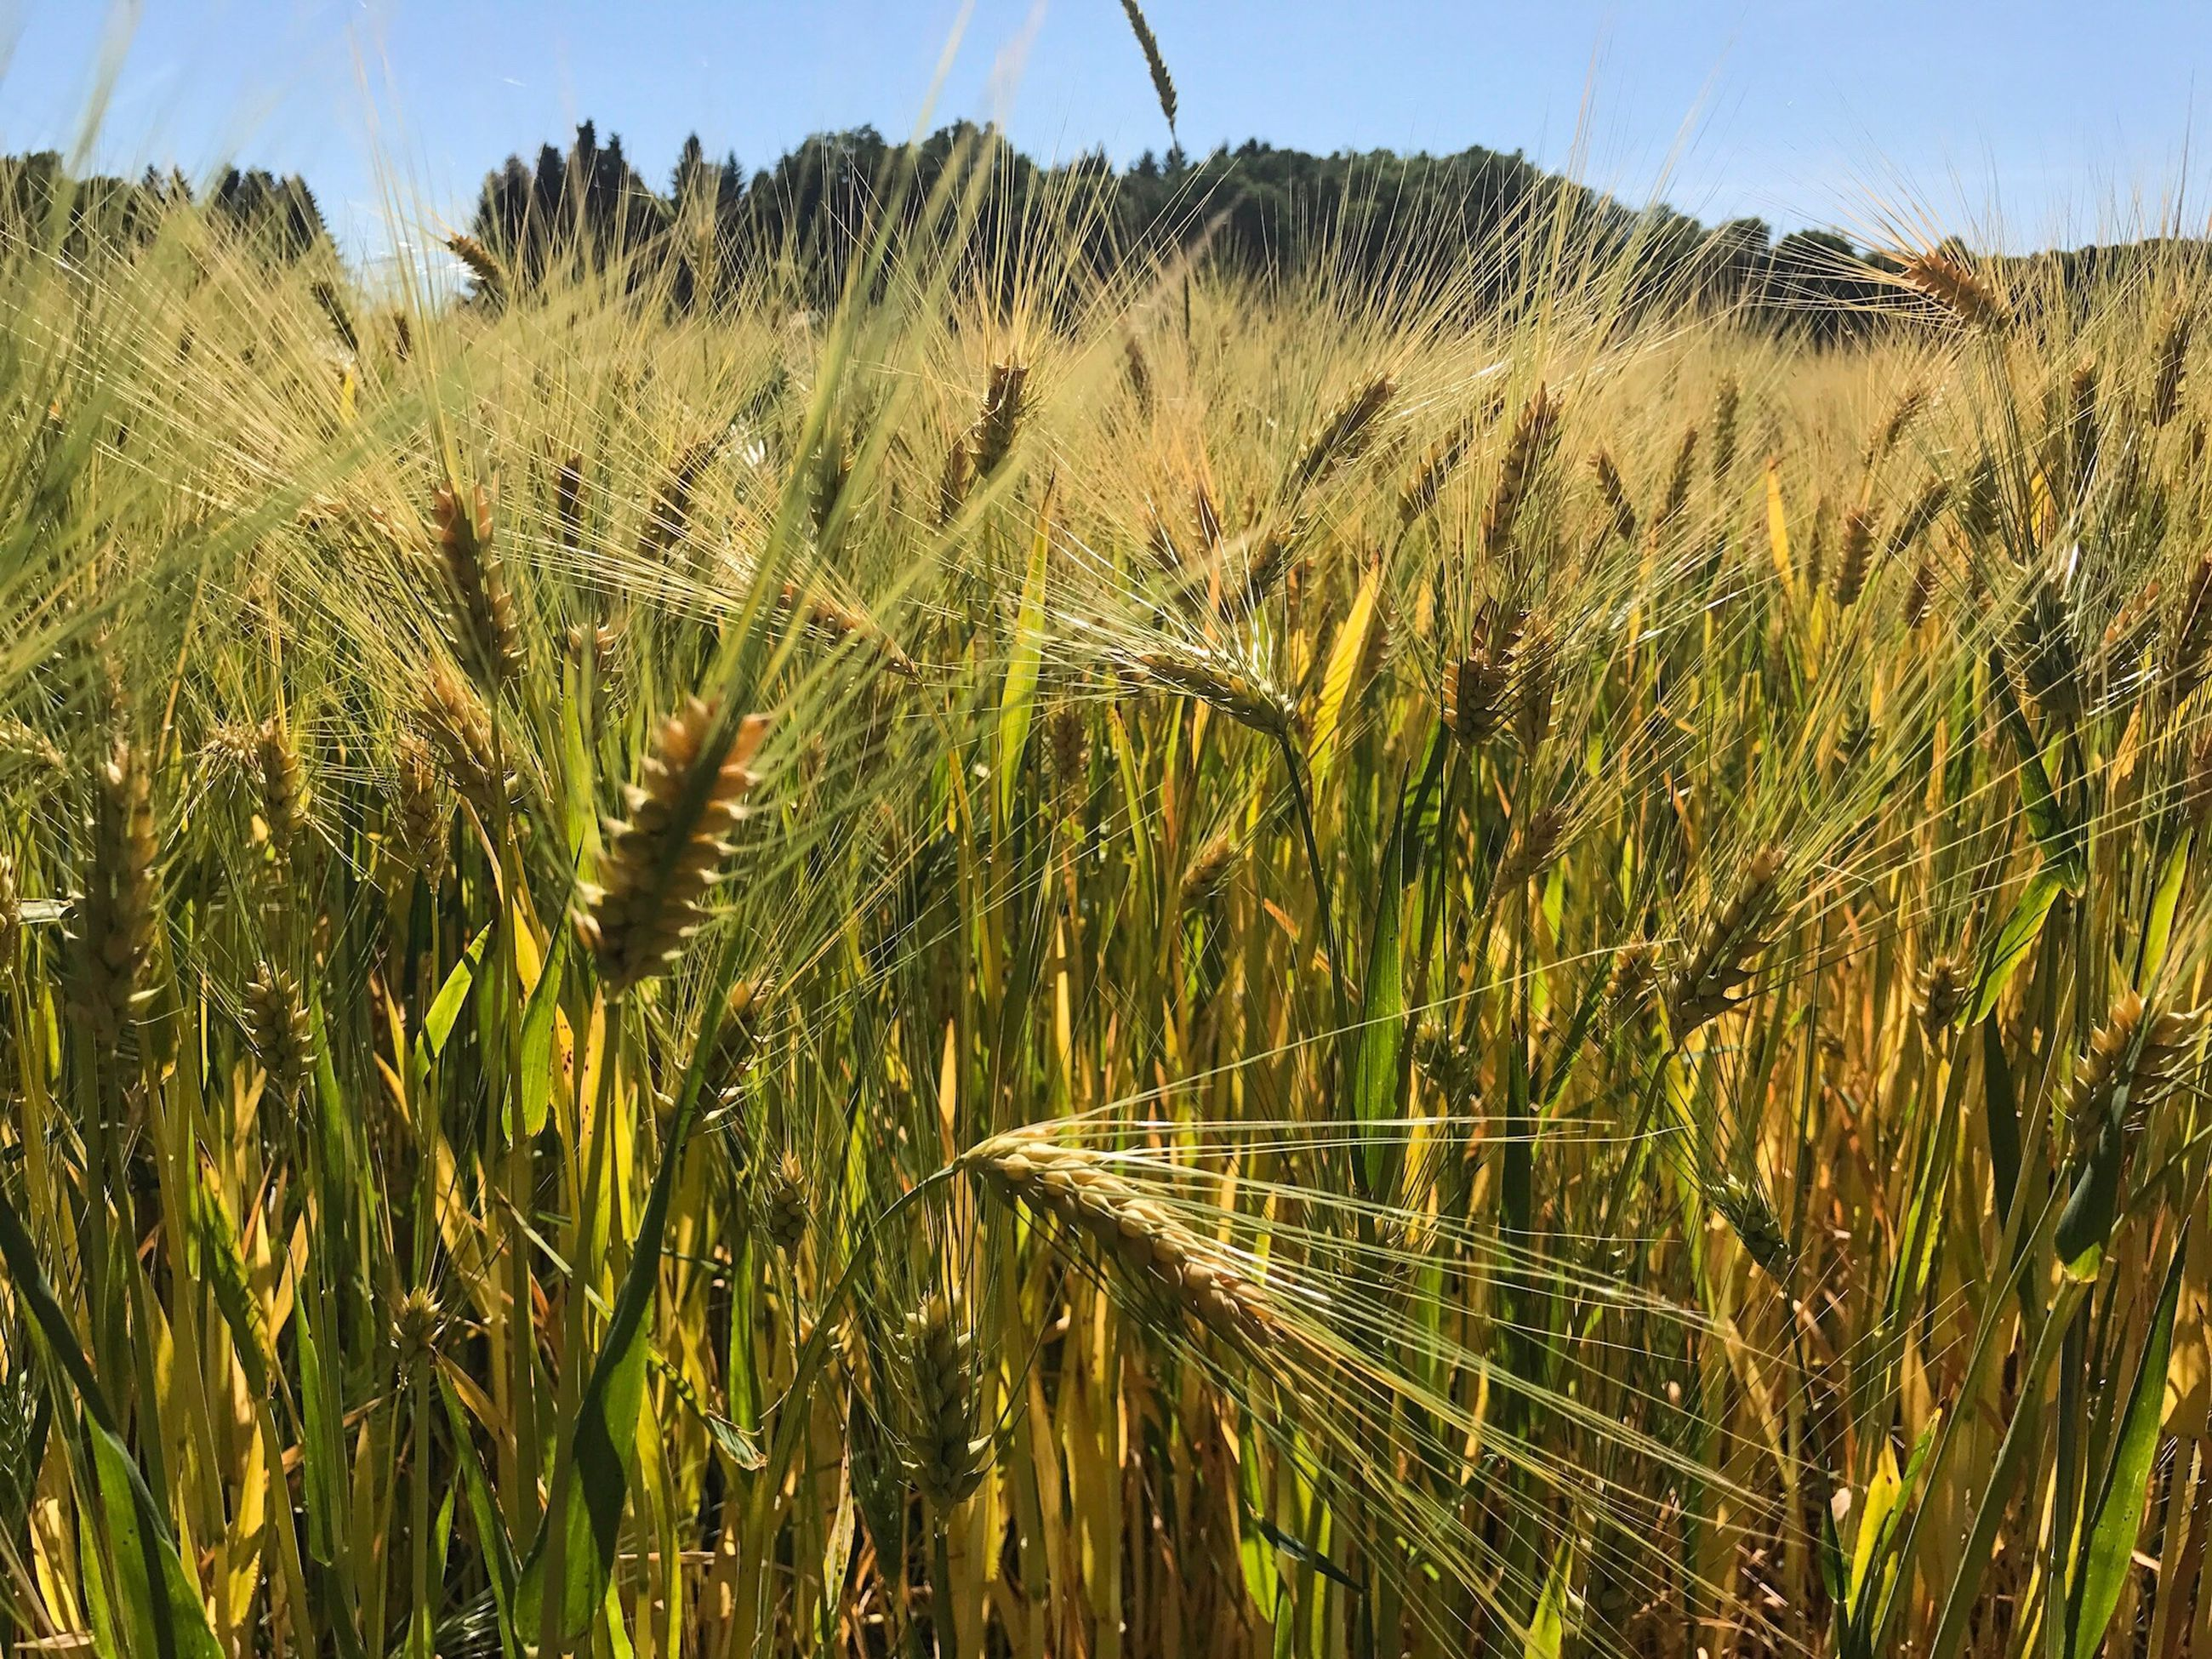 growth, agriculture, crop, cereal plant, field, farm, nature, rural scene, wheat, ear of wheat, cultivated land, plant, day, tranquility, tranquil scene, beauty in nature, outdoors, landscape, green color, no people, scenics, sky, close-up, clear sky, grass, rice paddy, freshness